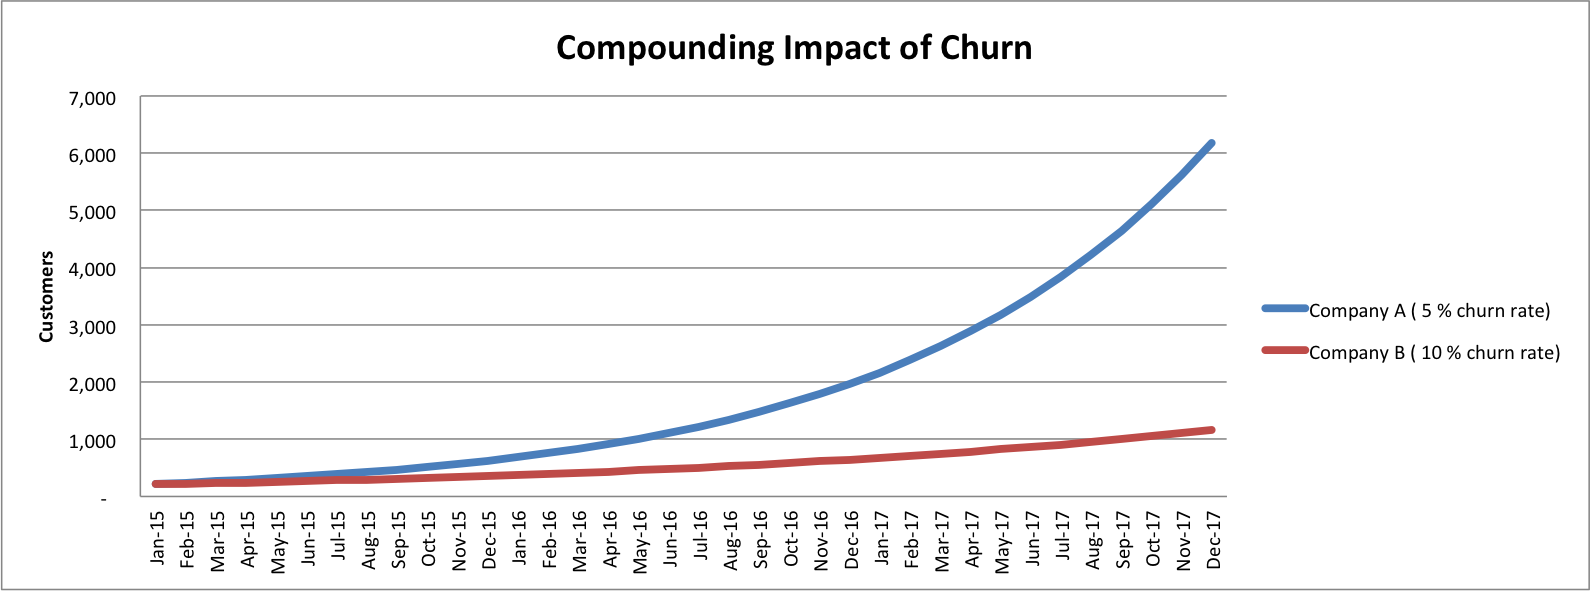 saas sales compounding impact of churn